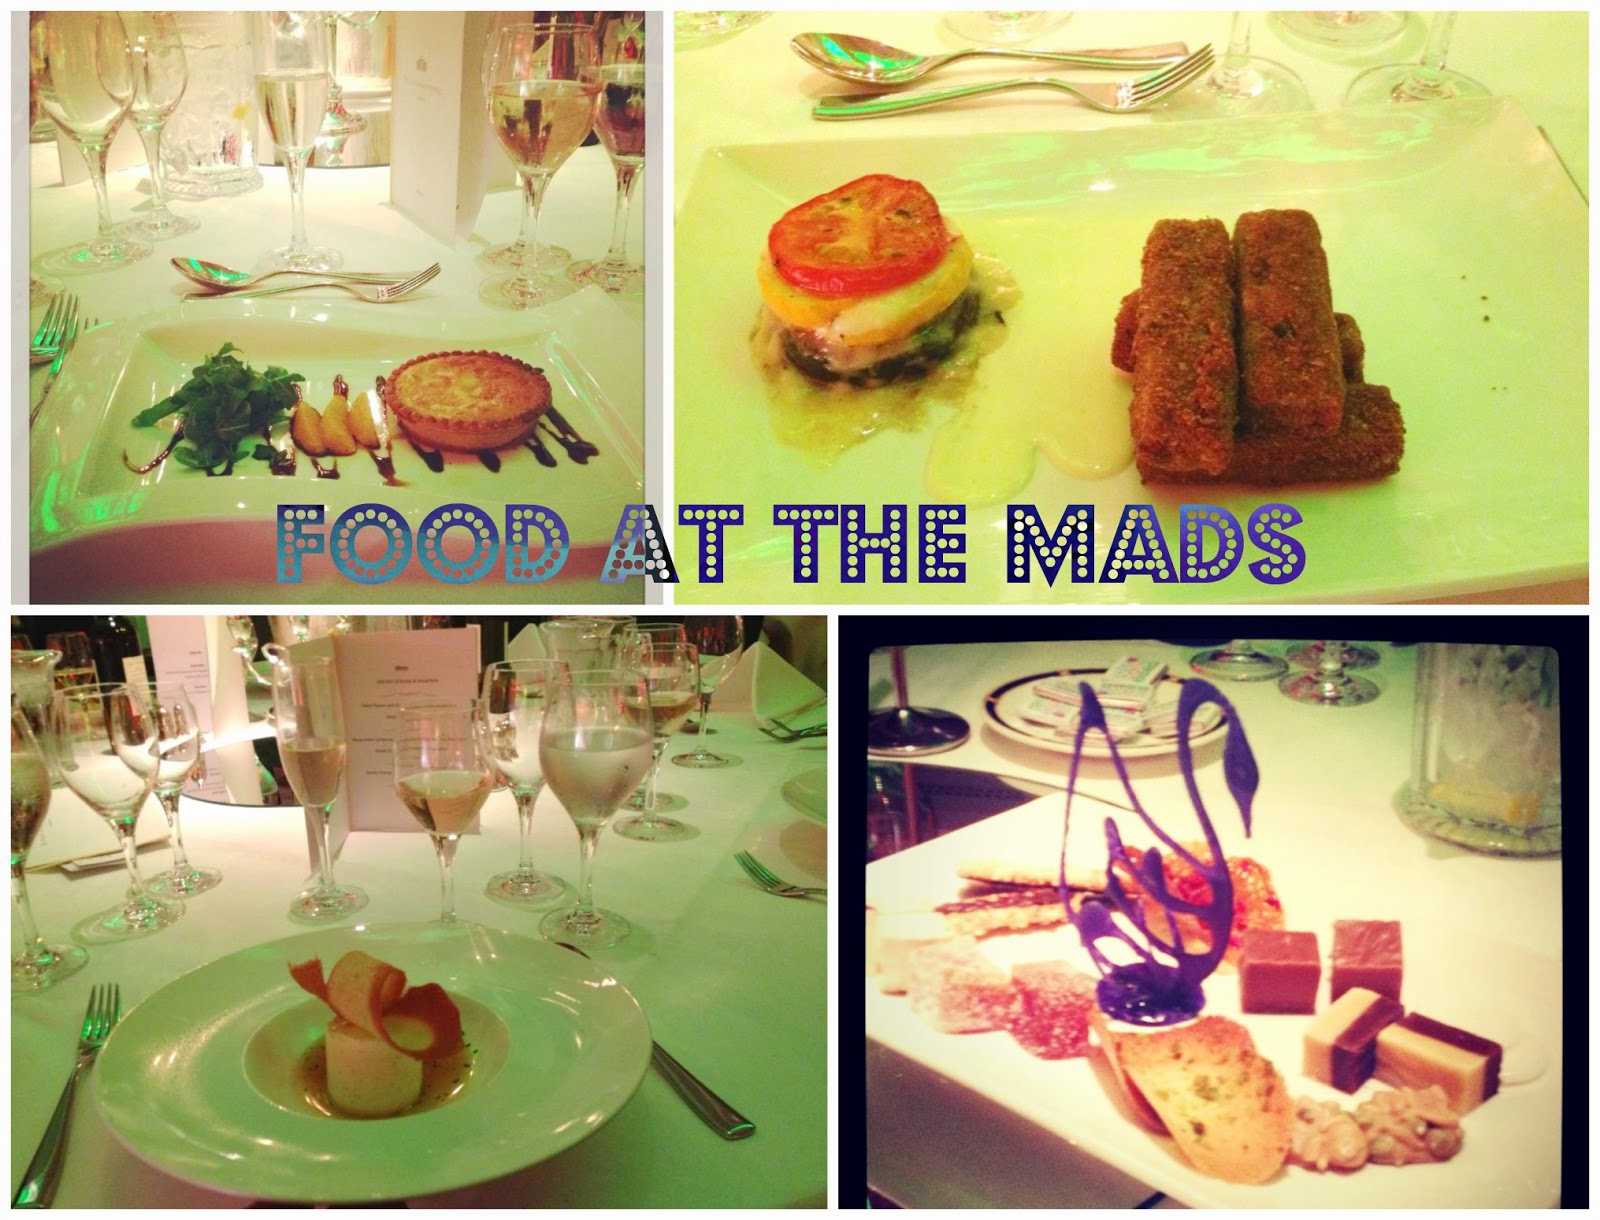 Fabulous food at Royal Garden Hotel - Mad blog awards 2014